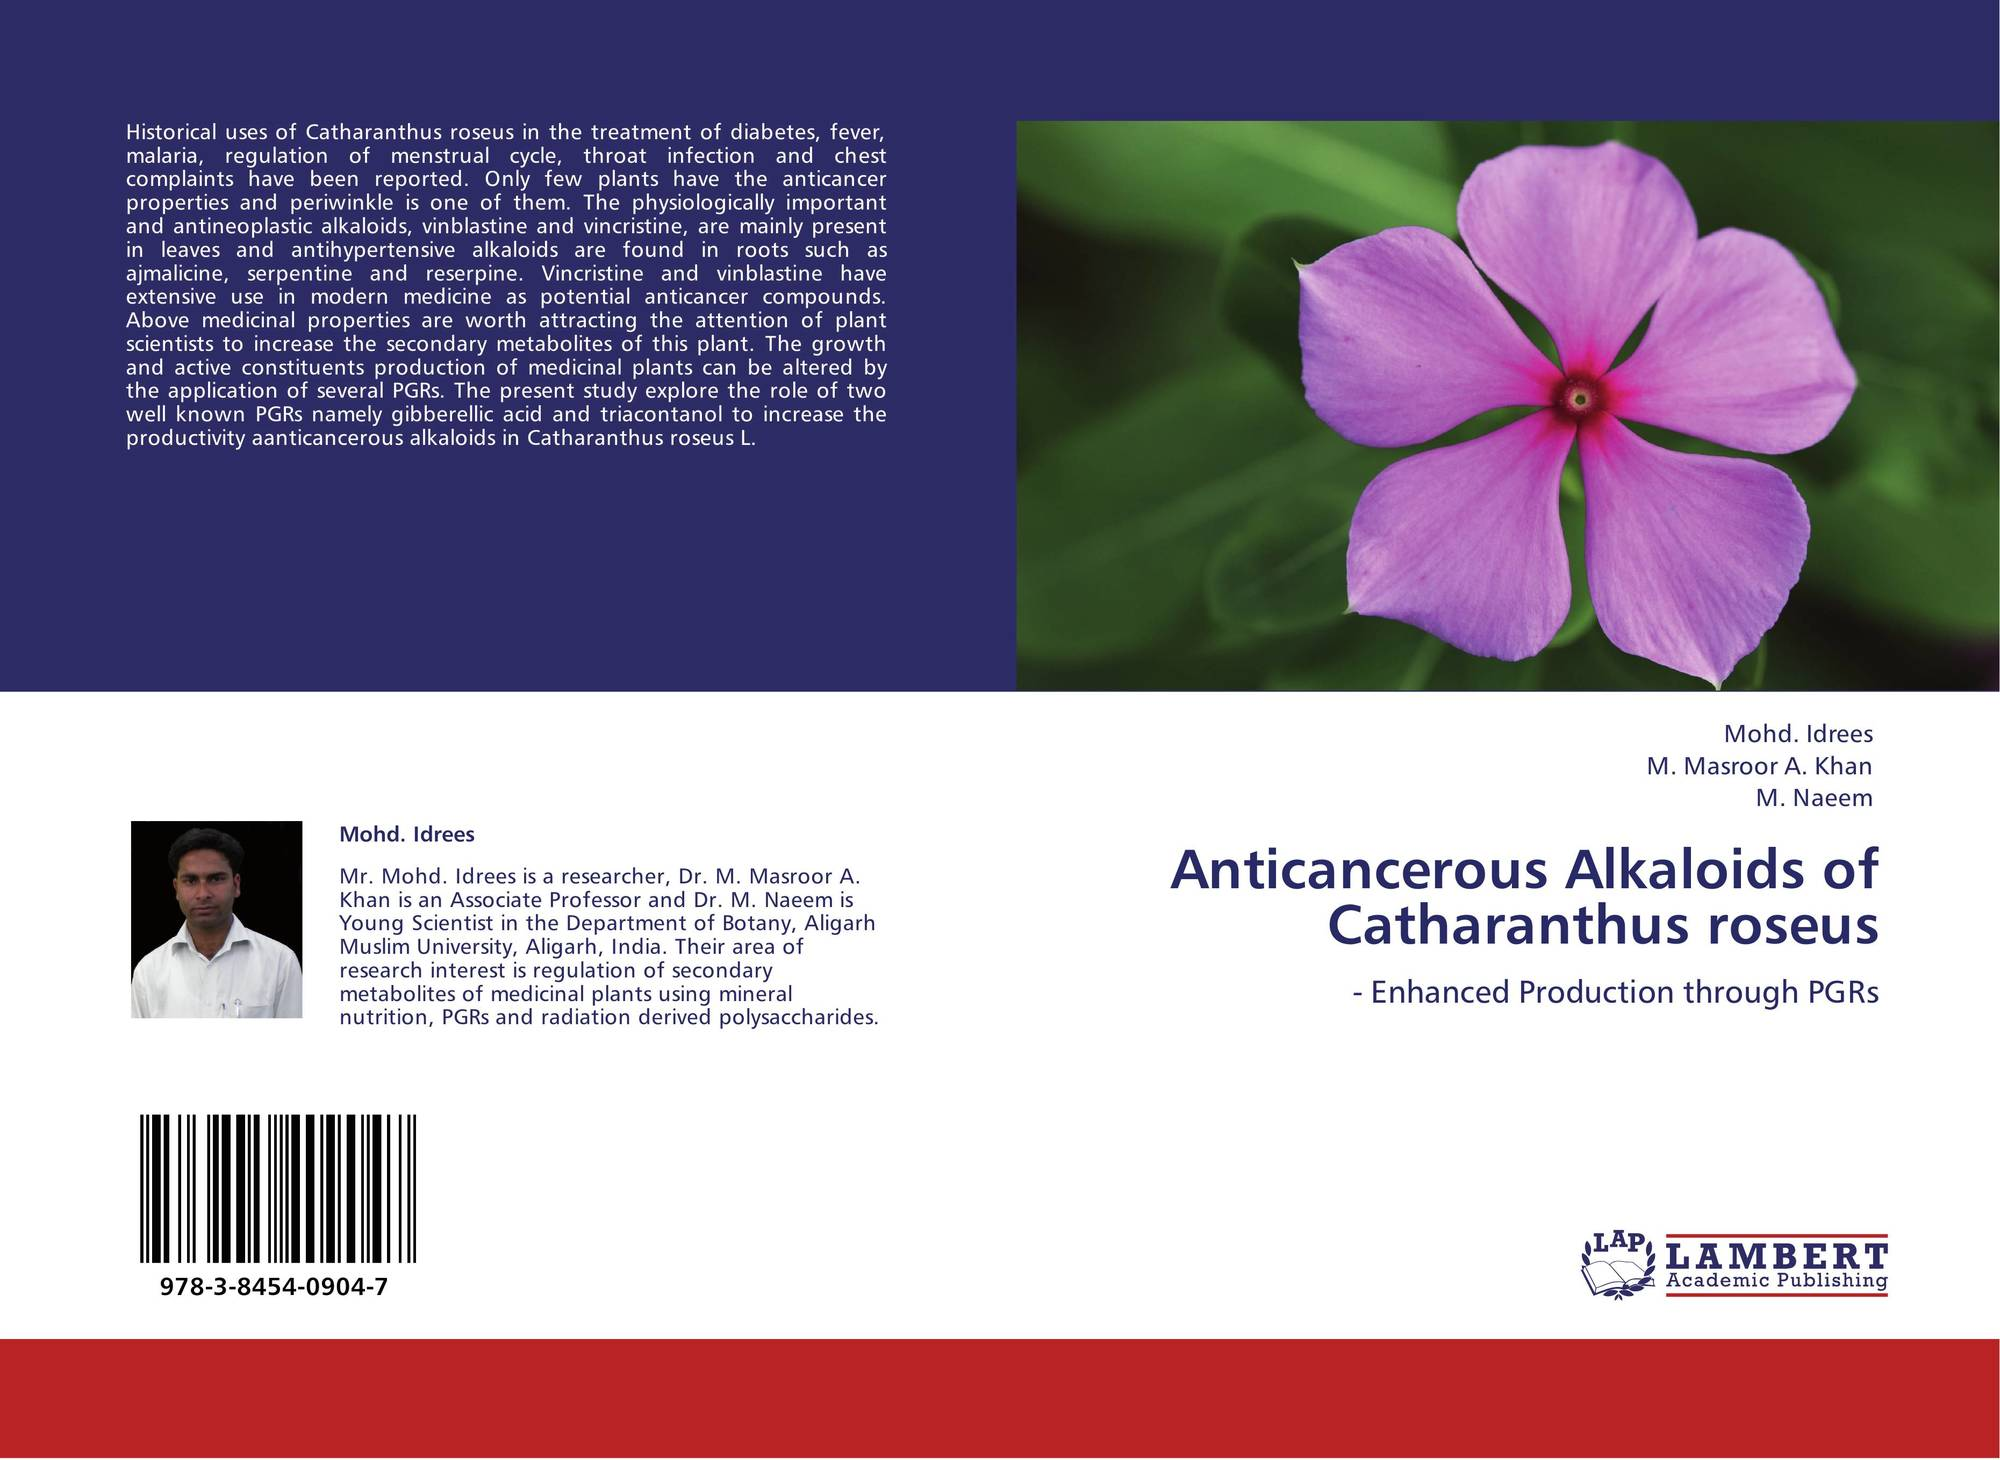 thesis on catharanthus roseus Catharanthus roseus, commonly known as the madagascar periwinkle, rose periwinkle, or rosy periwinkle, is a species of flowering plant in the dogbane family apocynaceae.